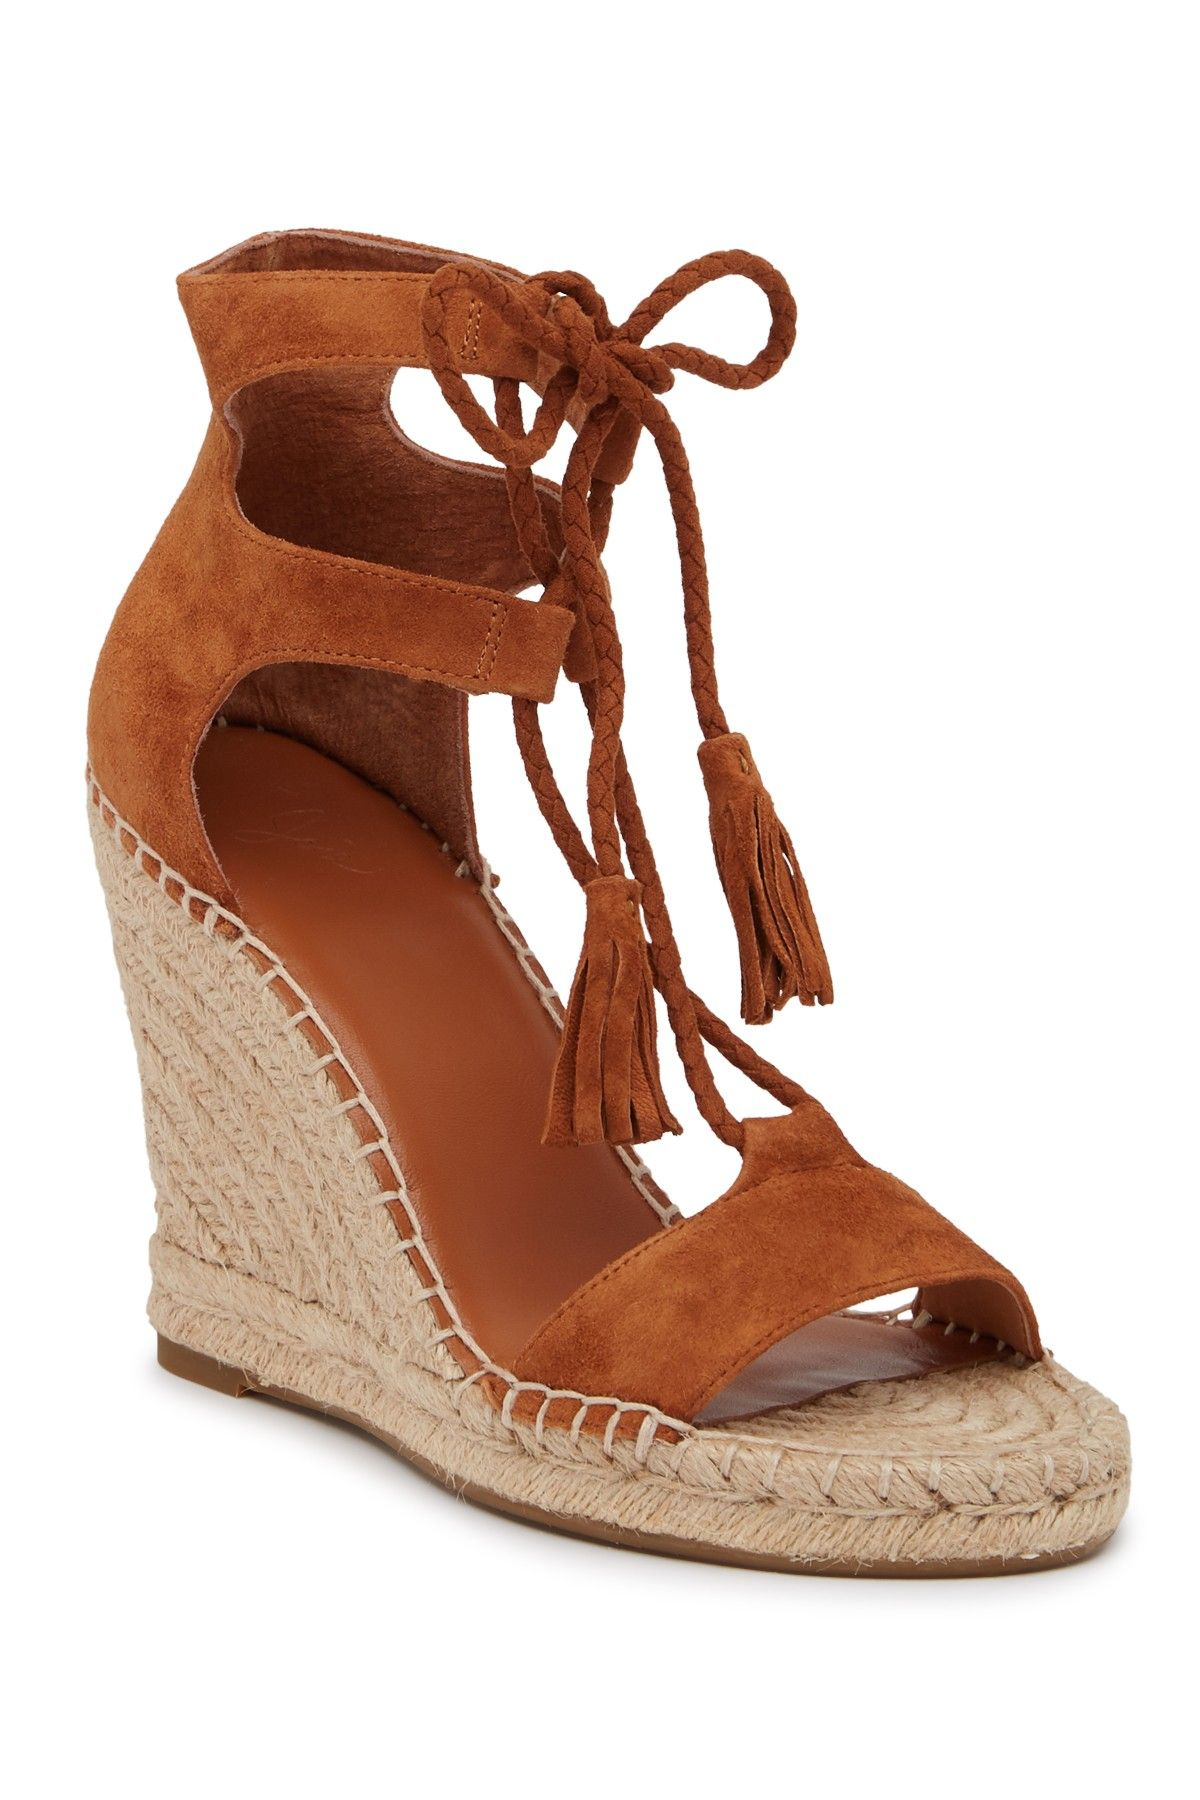 ebea8ba2eb7 Joie | Delilah Espadrille Suede Wedge Sandal | Products | Wedge ...